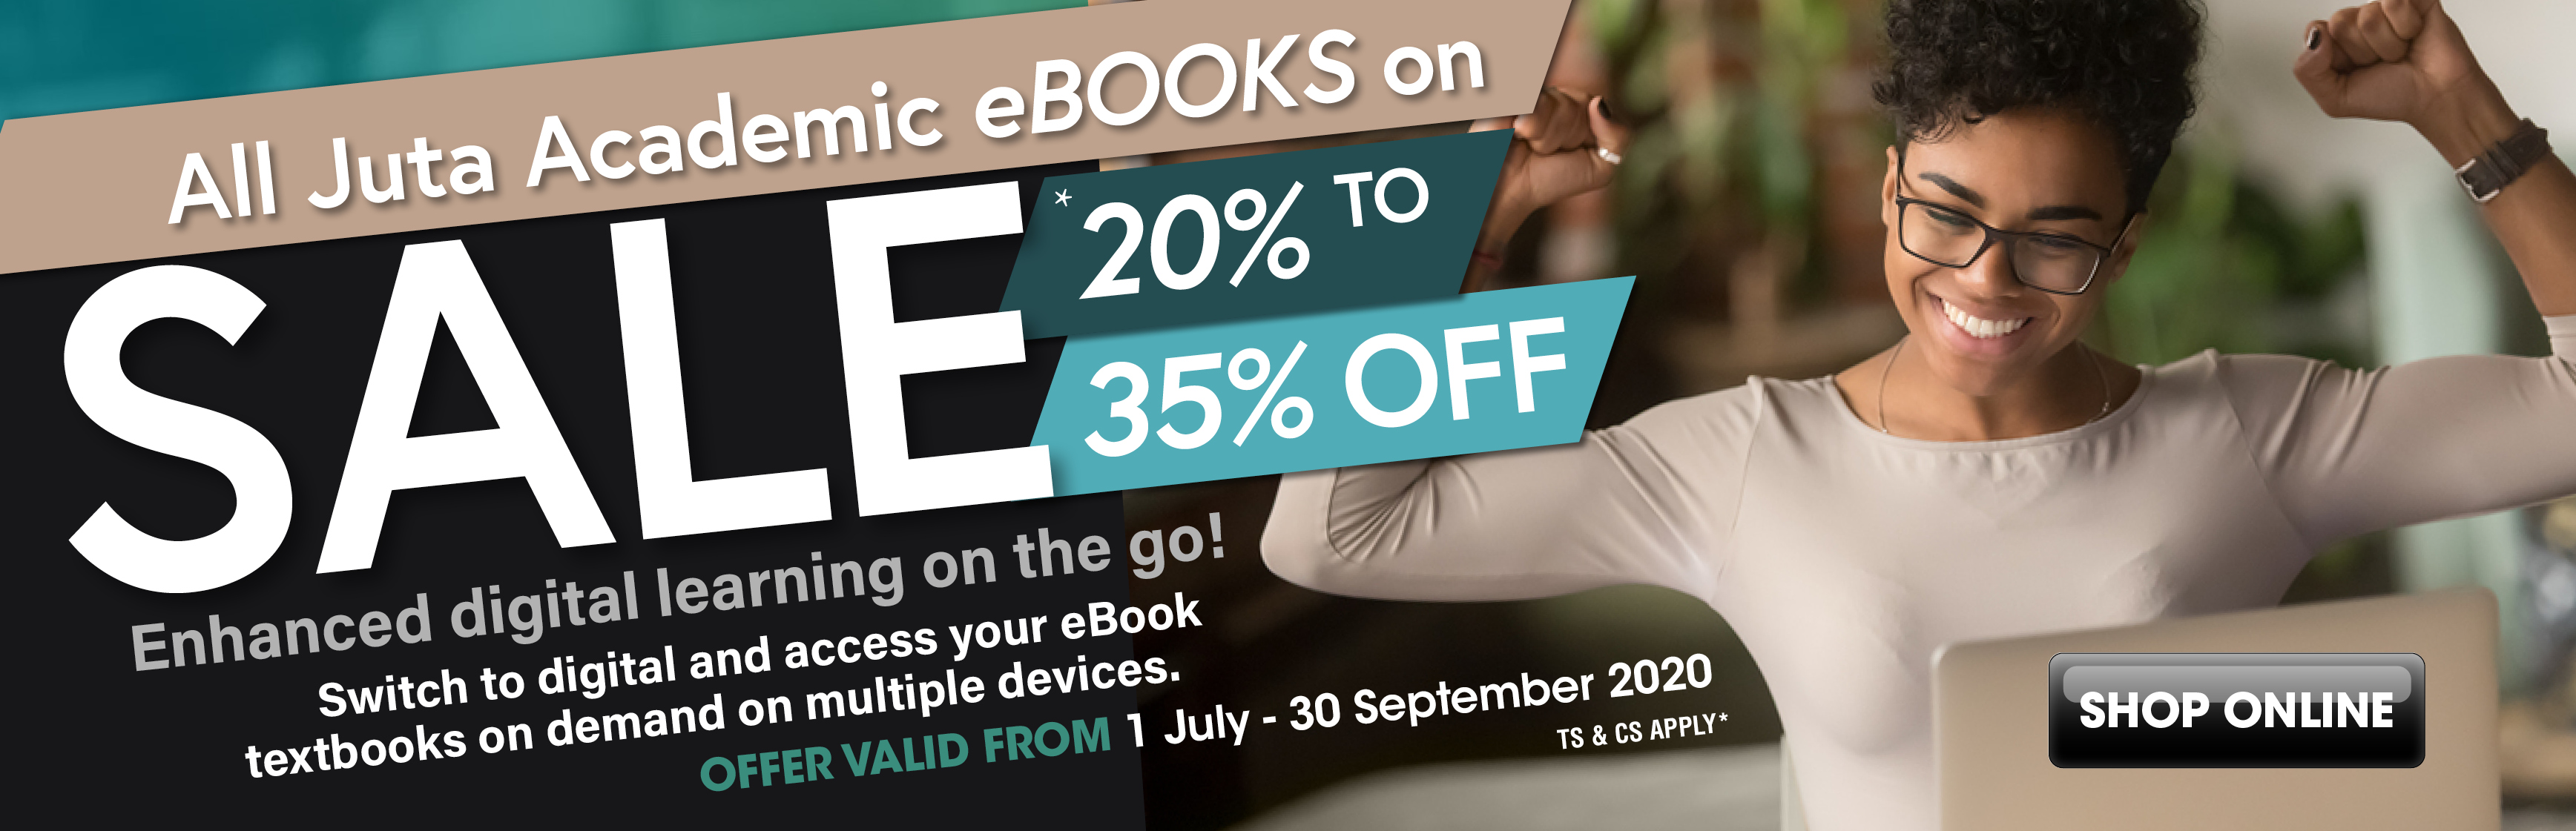 Juta Academic eBooks Sale